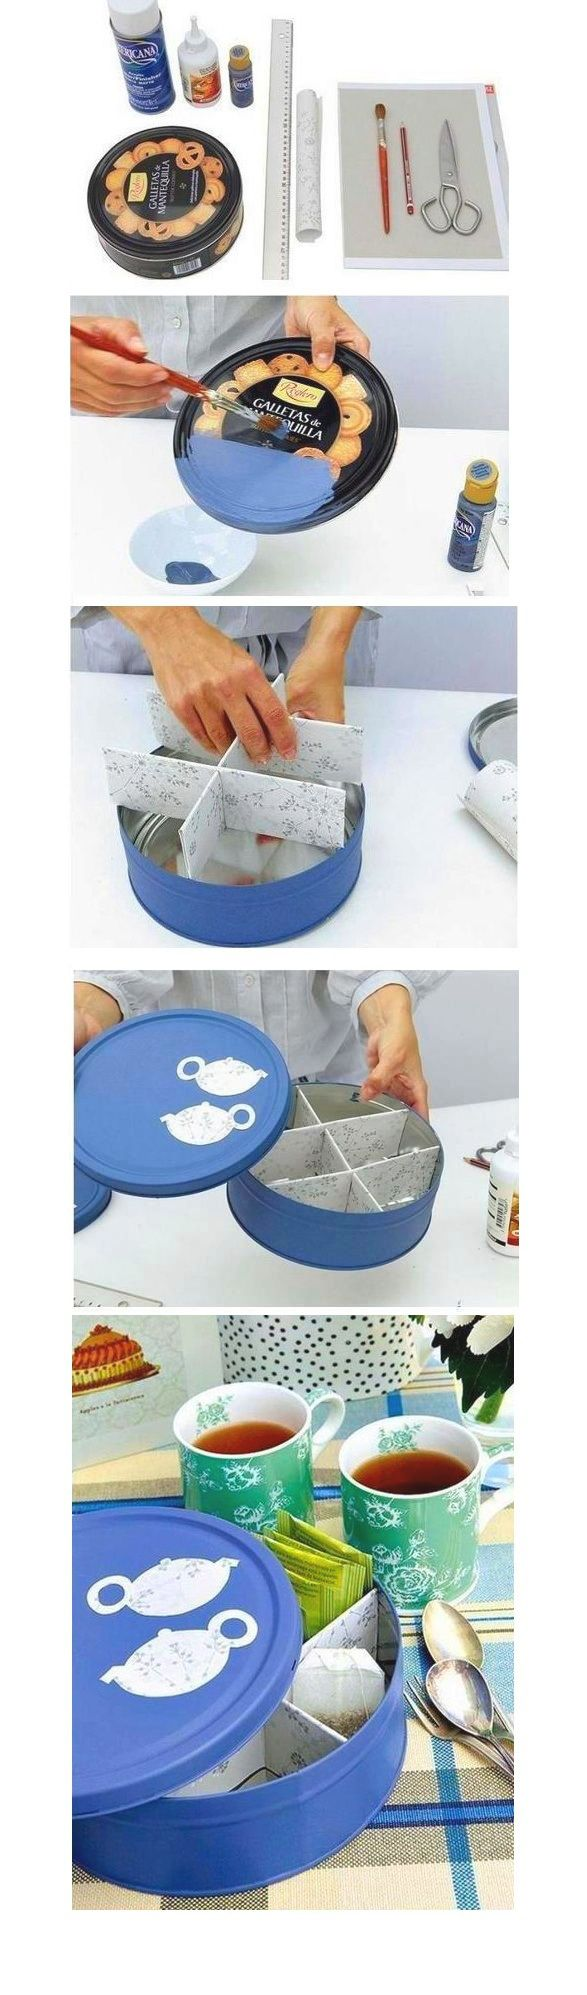 Cookie box diy